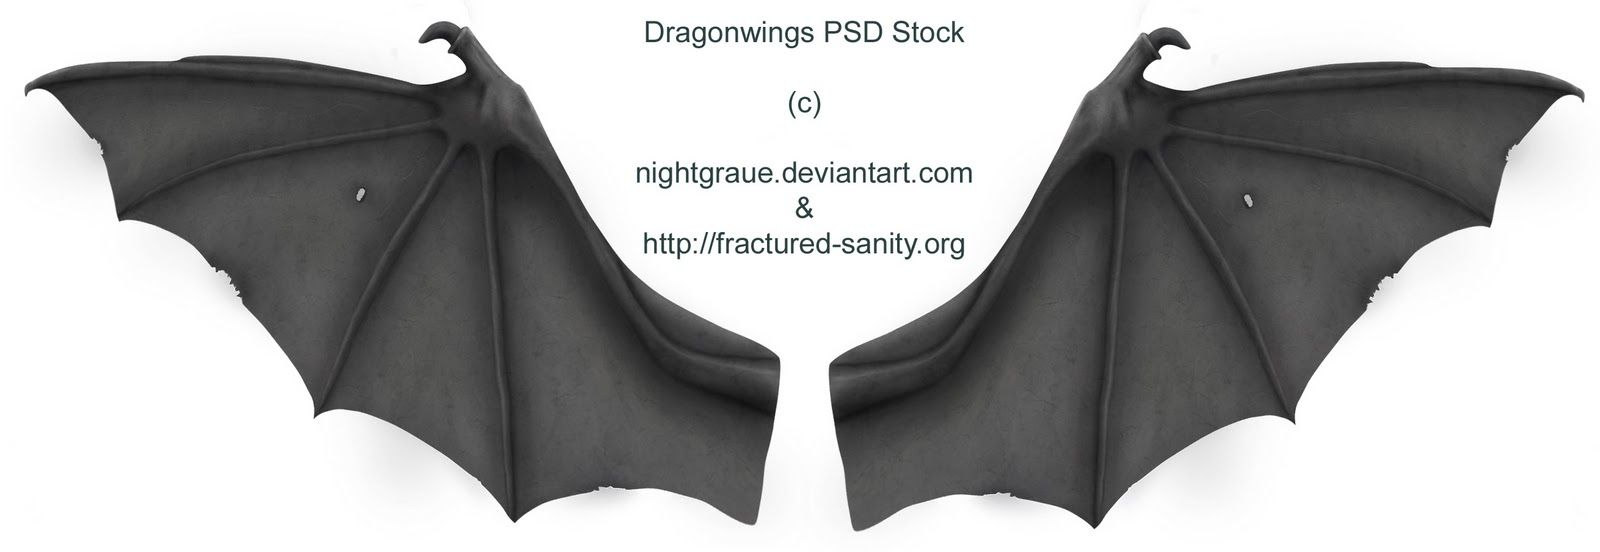 bat dragon wings - Google Search